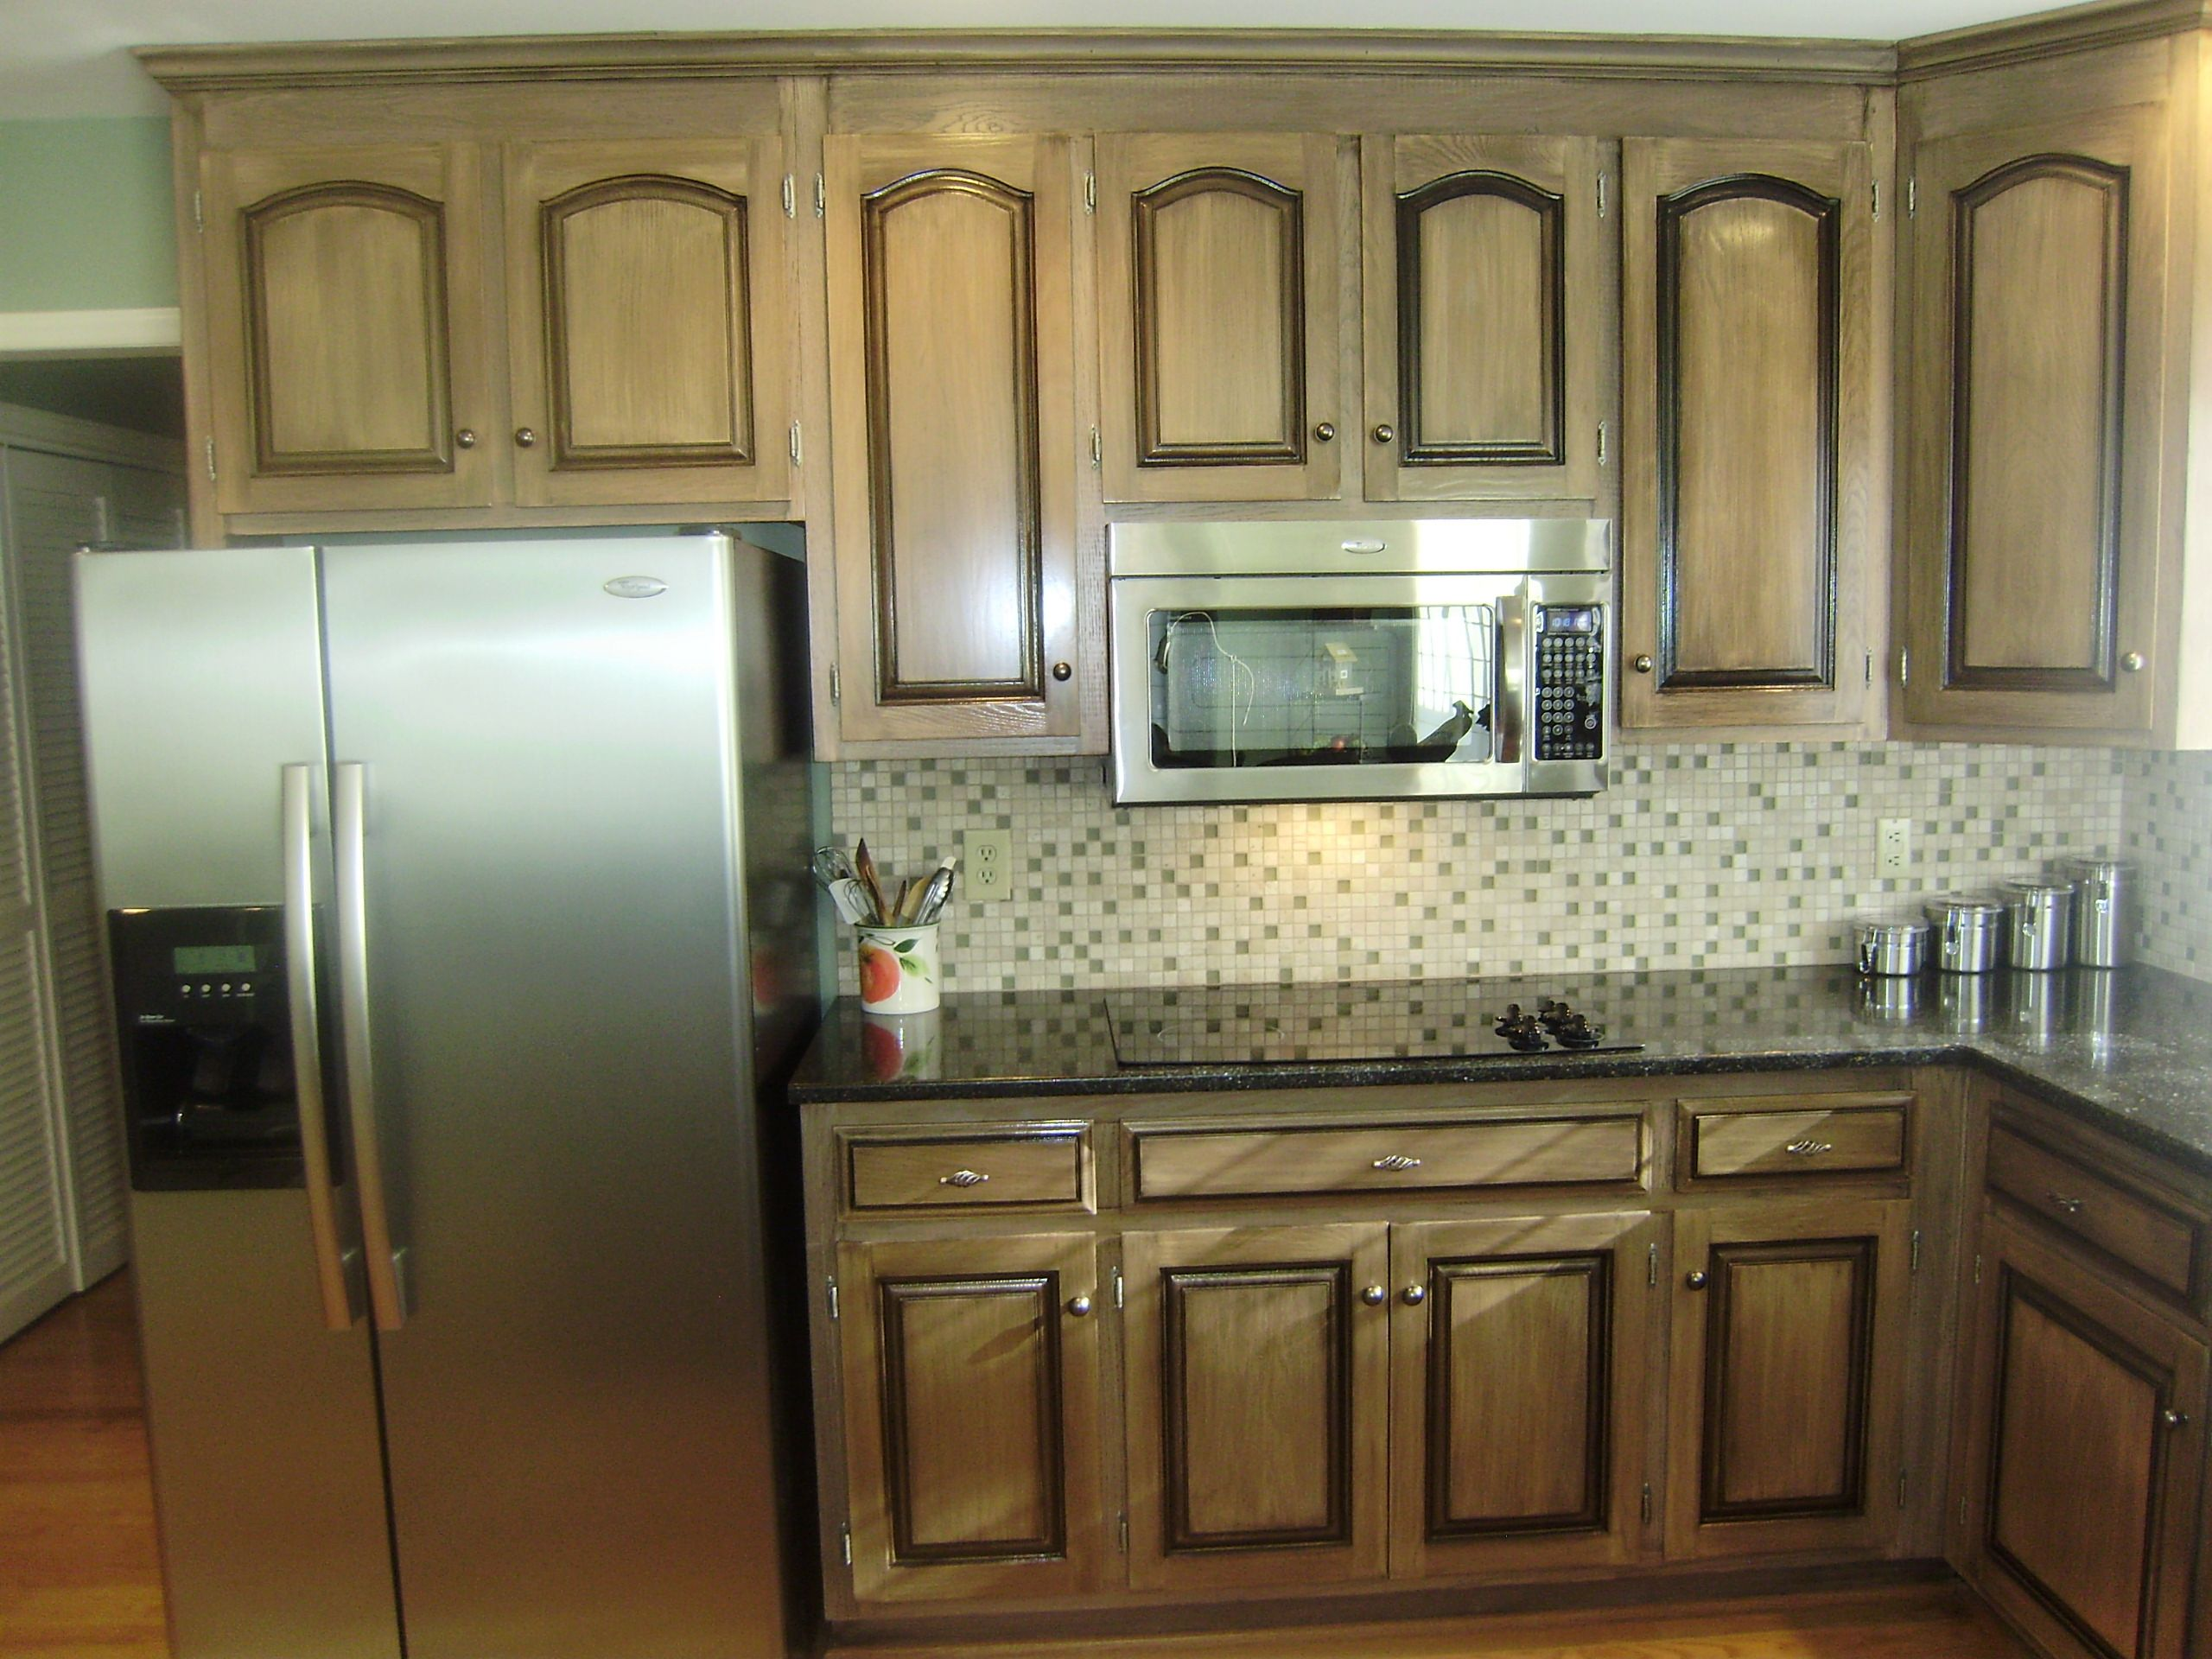 Black Glaze Over Pickled Wood Kitchen Cabinet Design Updated Kitchen Designs Kitchen